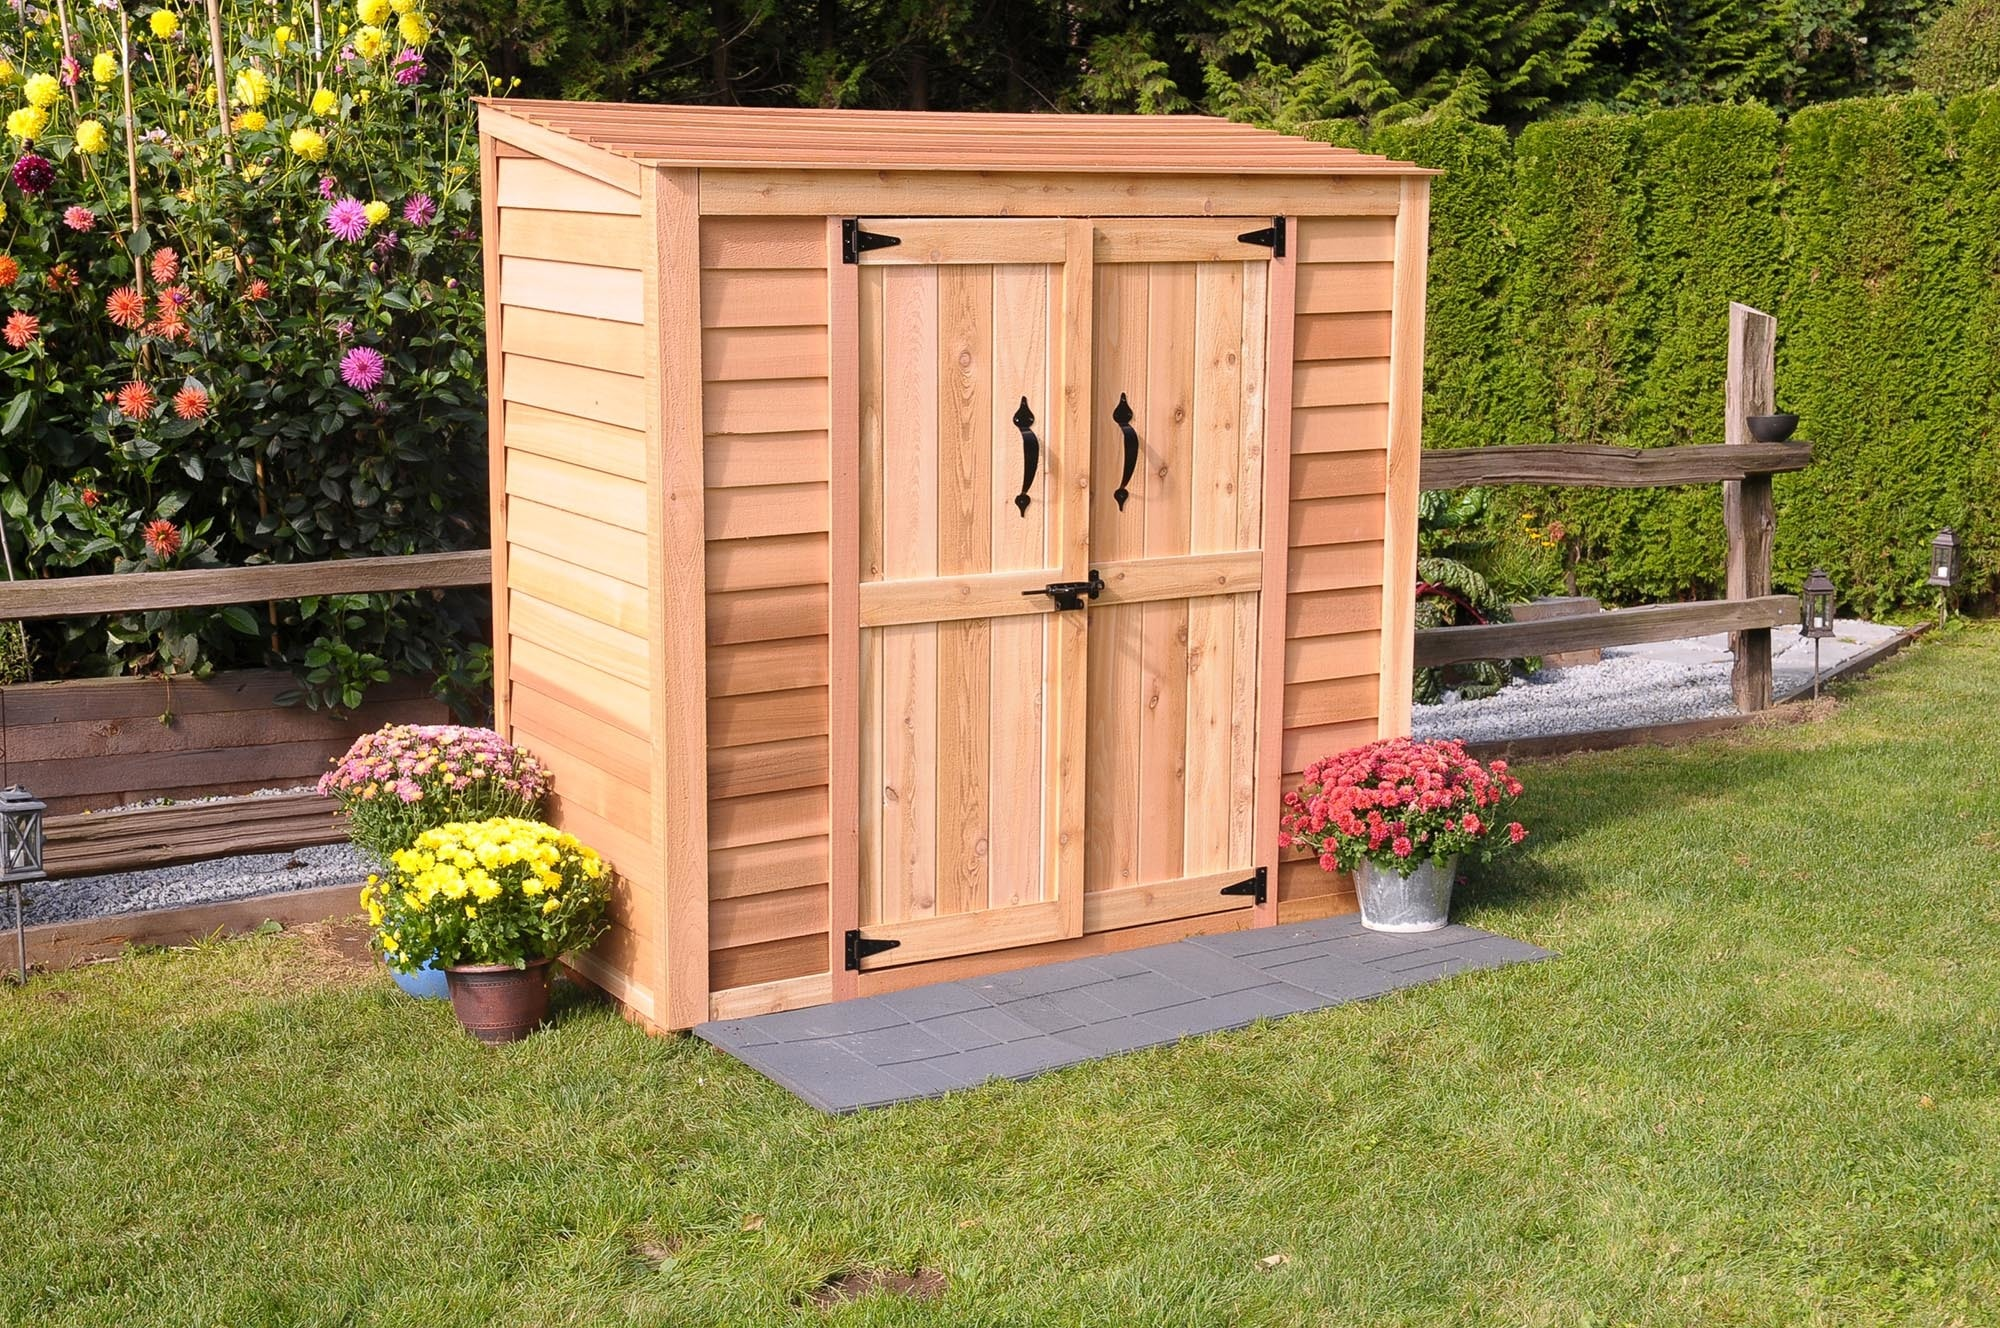 Hewetson storage sheds compact series 6 5 39 x 3 39 patio for Outdoor wood shed